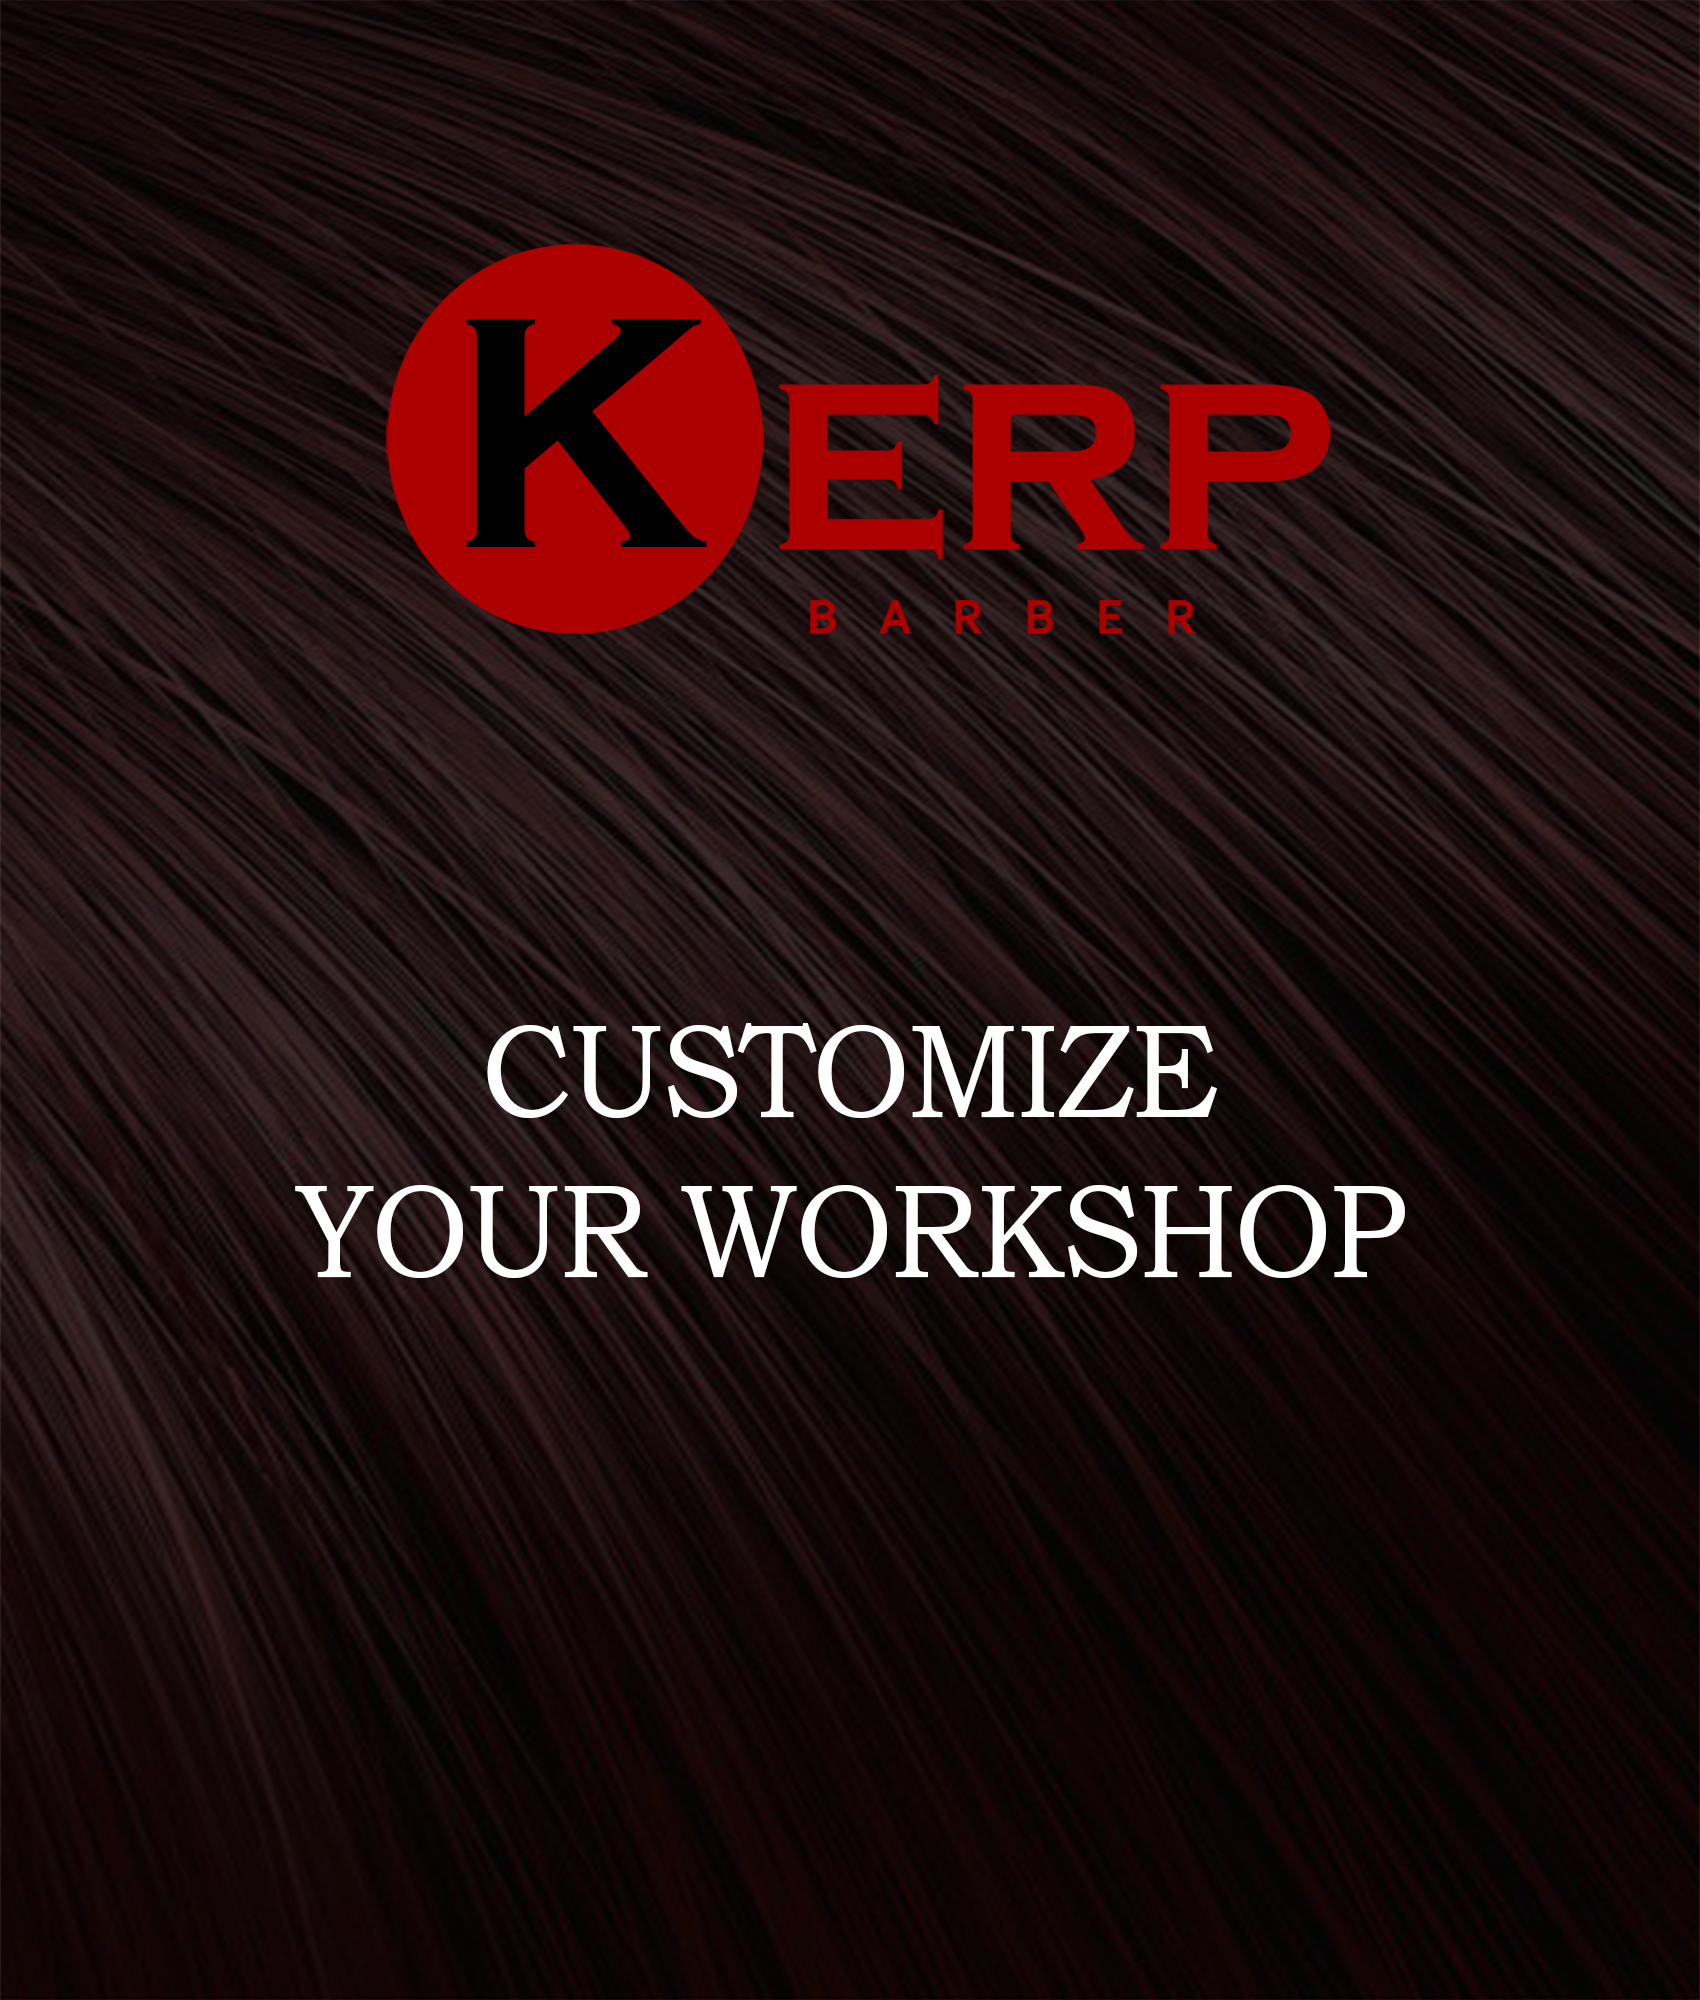 Customize your workshop banner